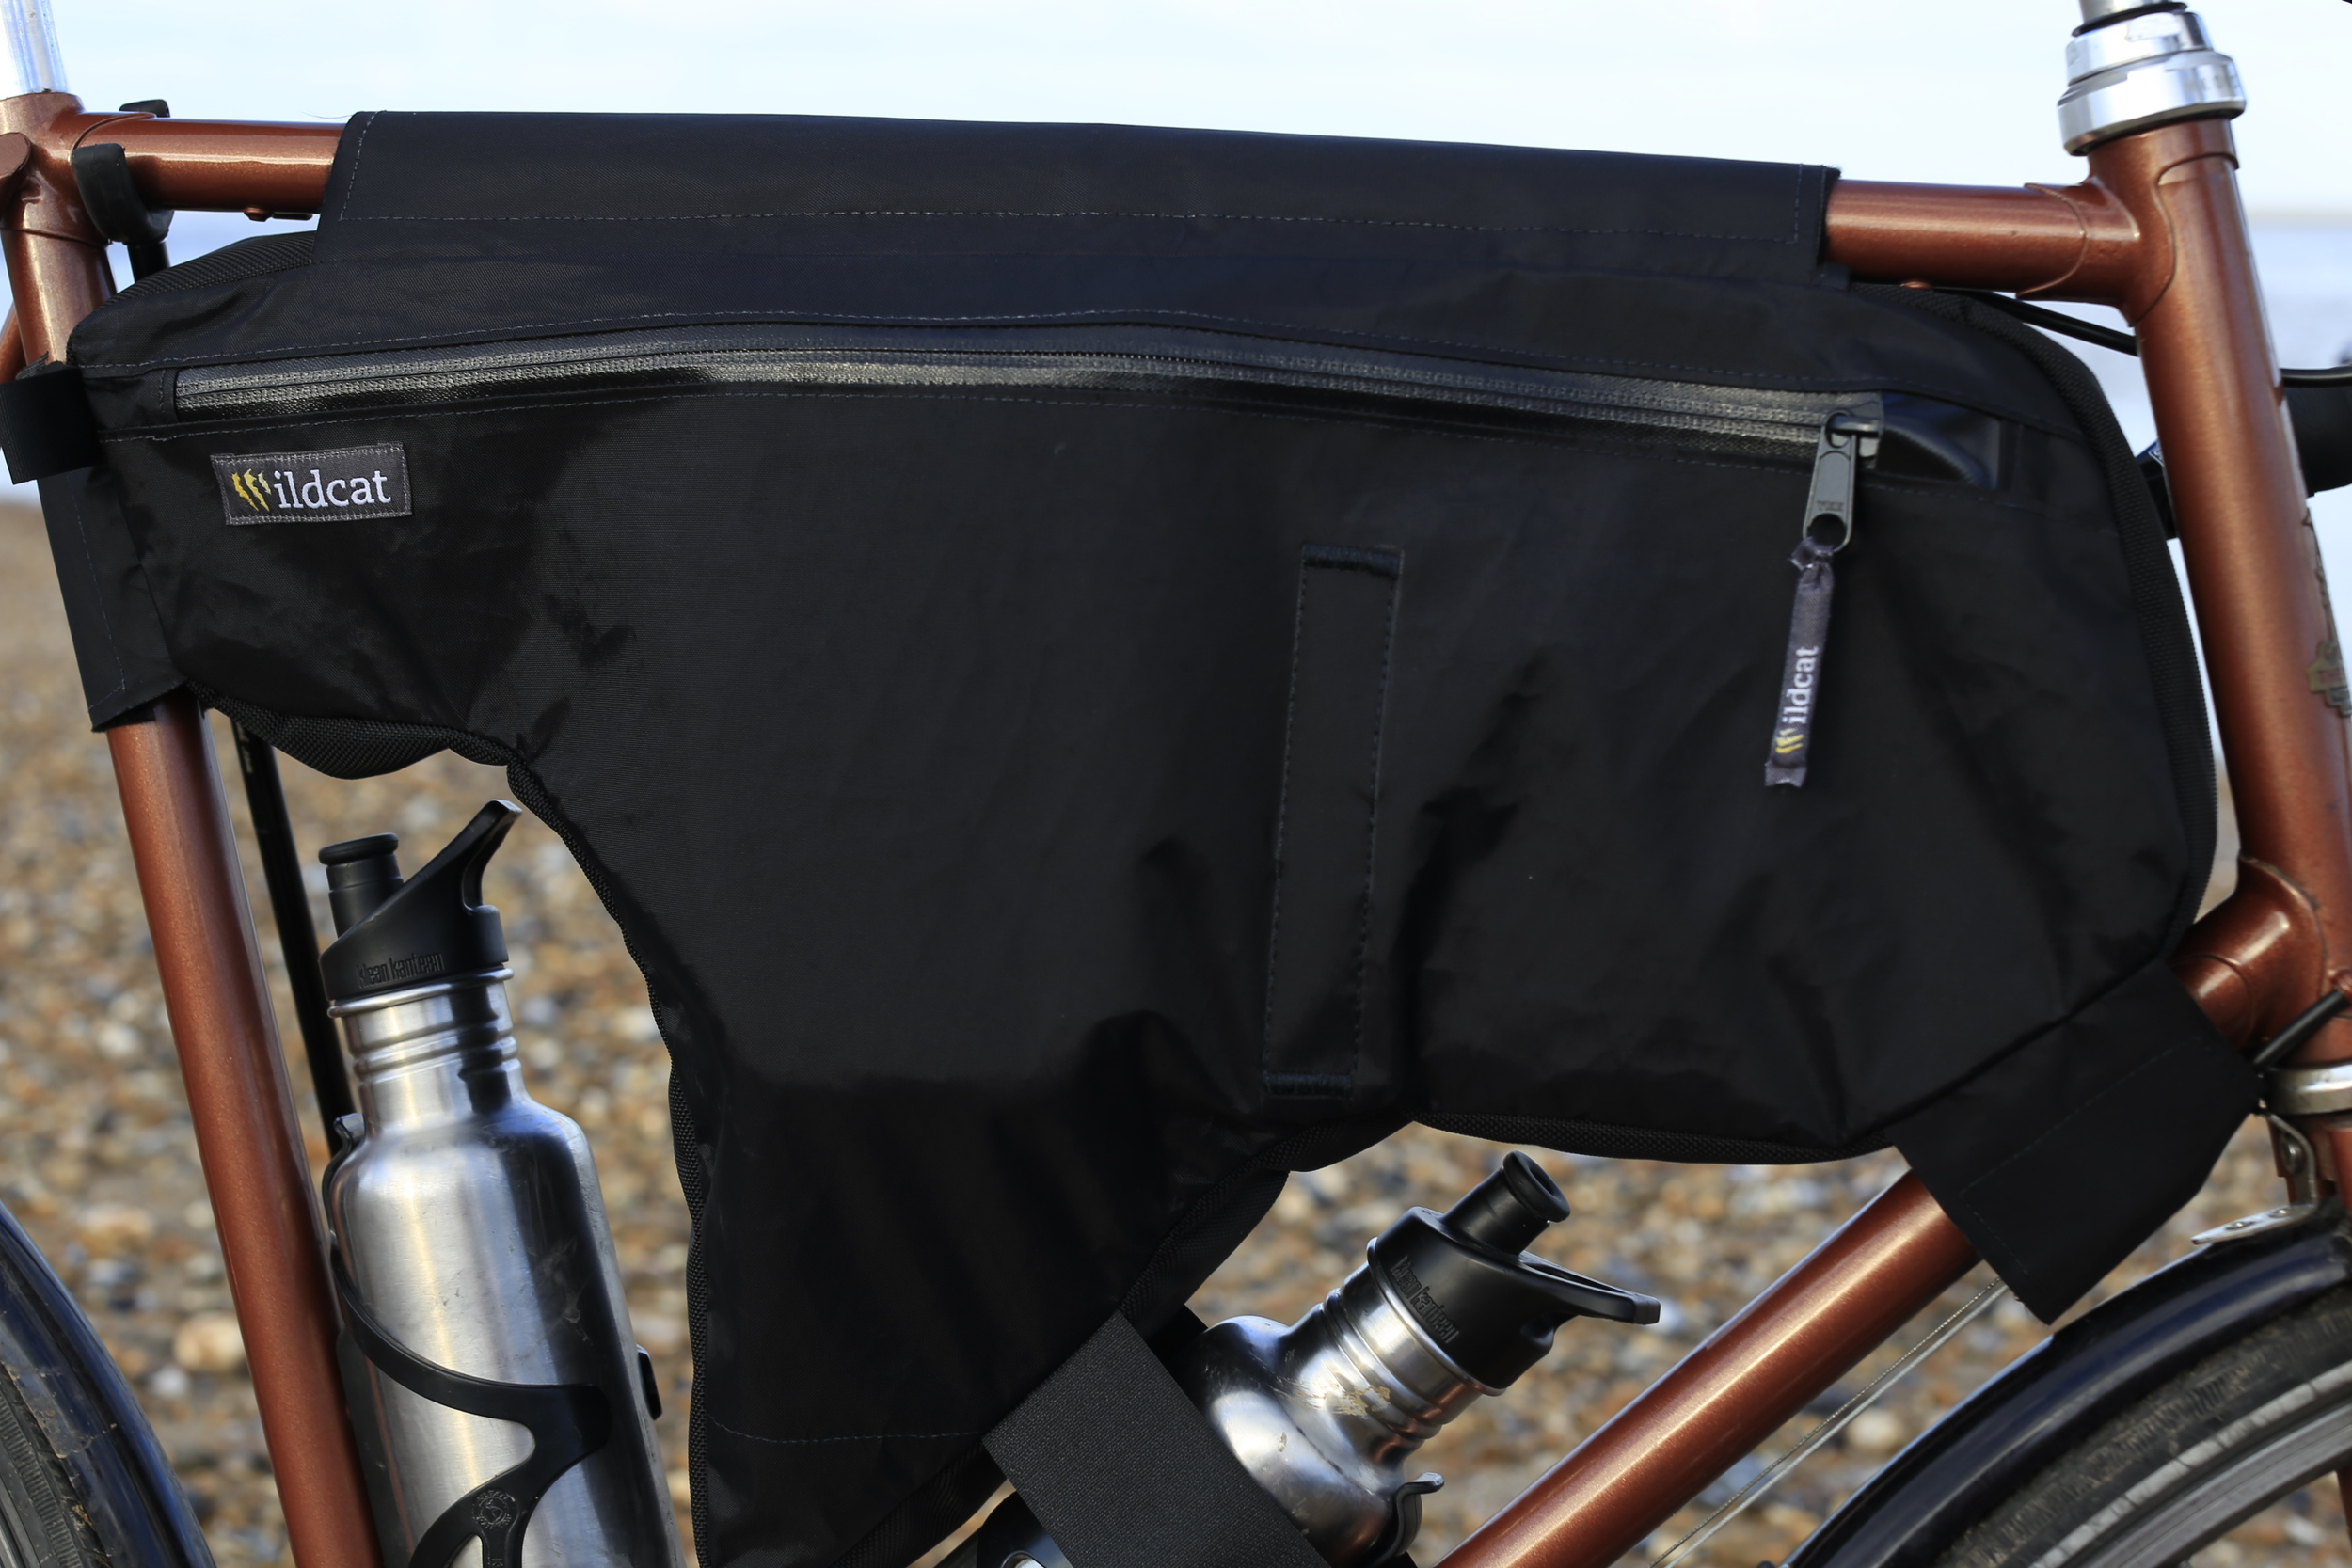 frame bag, panniers, bicycle, custom tourer, cycle gear, review